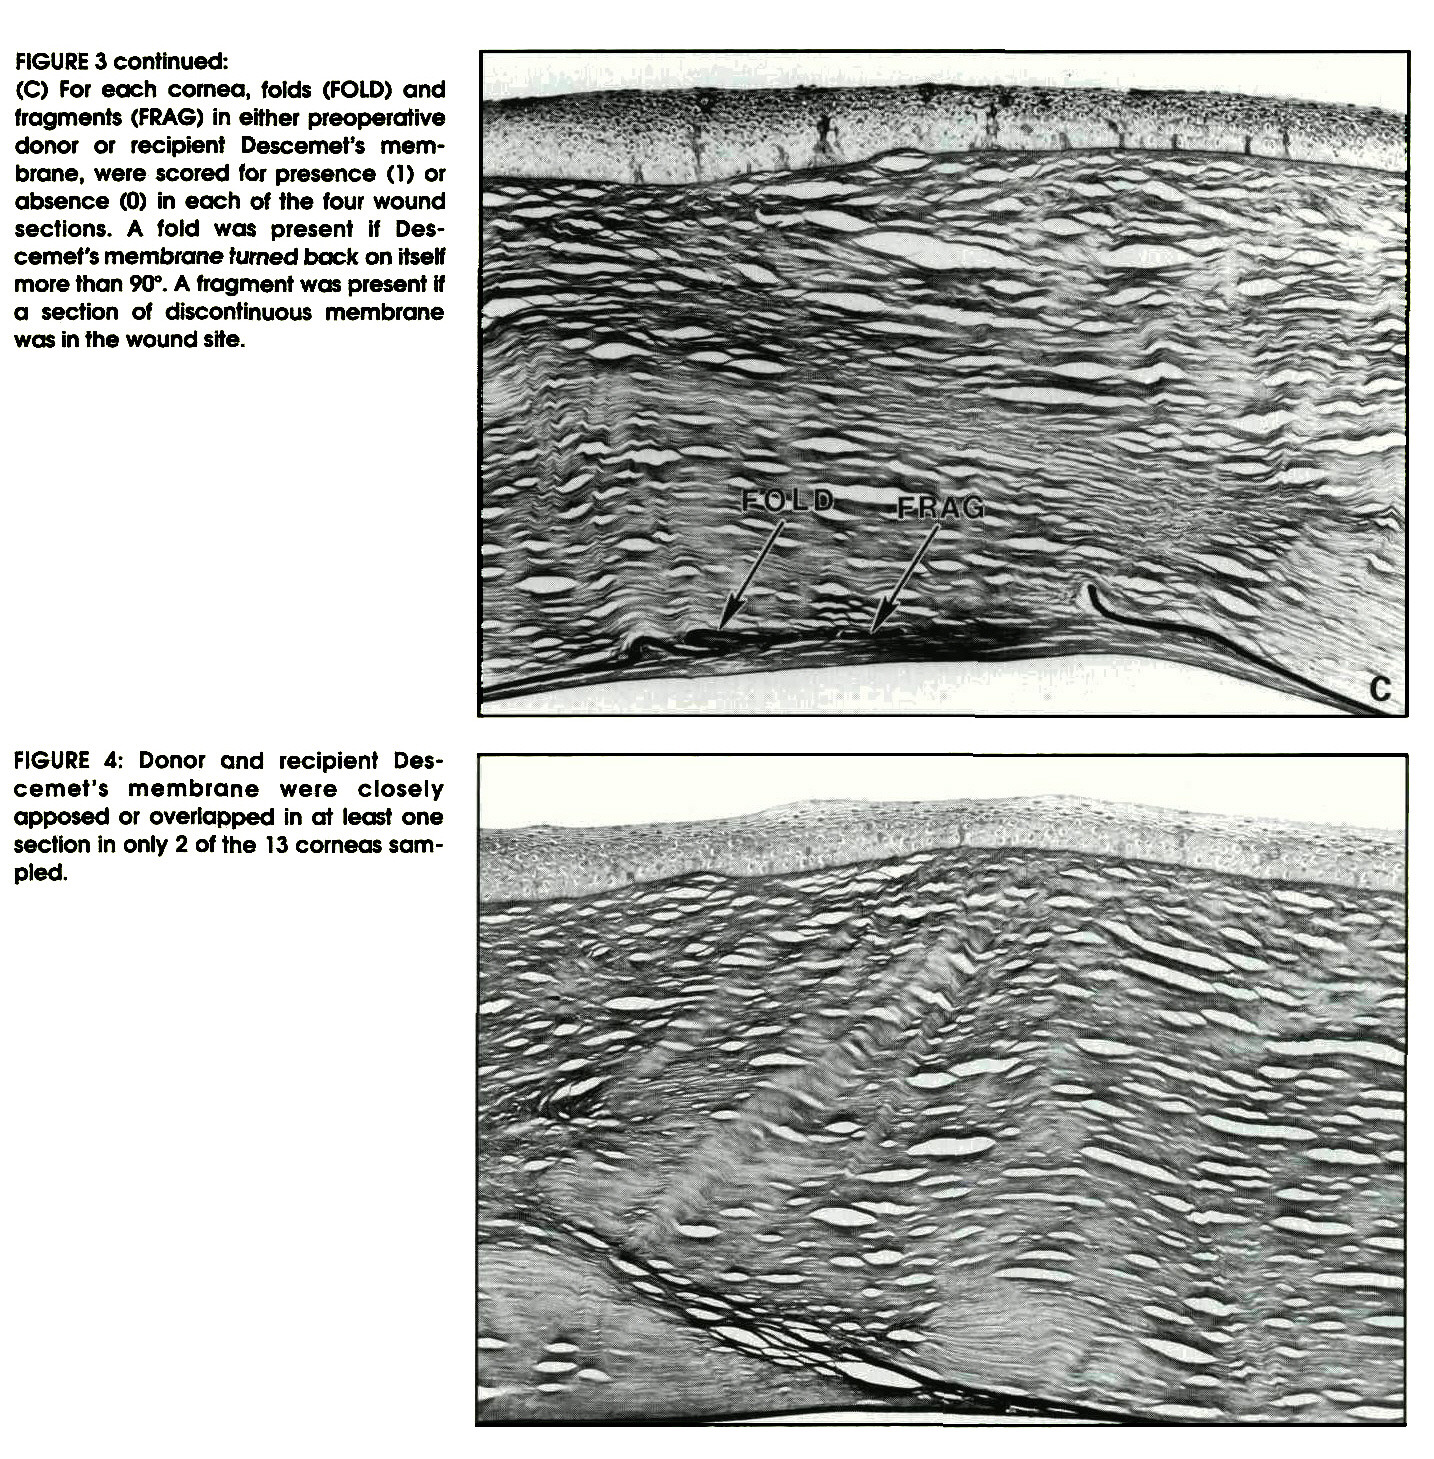 FIGURE 3 continued:(C) For each comea, folds (FOLD) and fragments (FRAG) in either preoperative donor or recipient Descemet's membrane, were scored for presence (1) or absence (0) in each of the four wound sections. A fold was present if Descemet's membrane fumed back on itself more than 90°. A fragment was present If a section of discontinuous membrane was in the wound site.FIGURE 4: Donor and recipient Descemet's membrane were closely apposed or overlapped in at least one section in only 2 of the 13 corneas sampled.